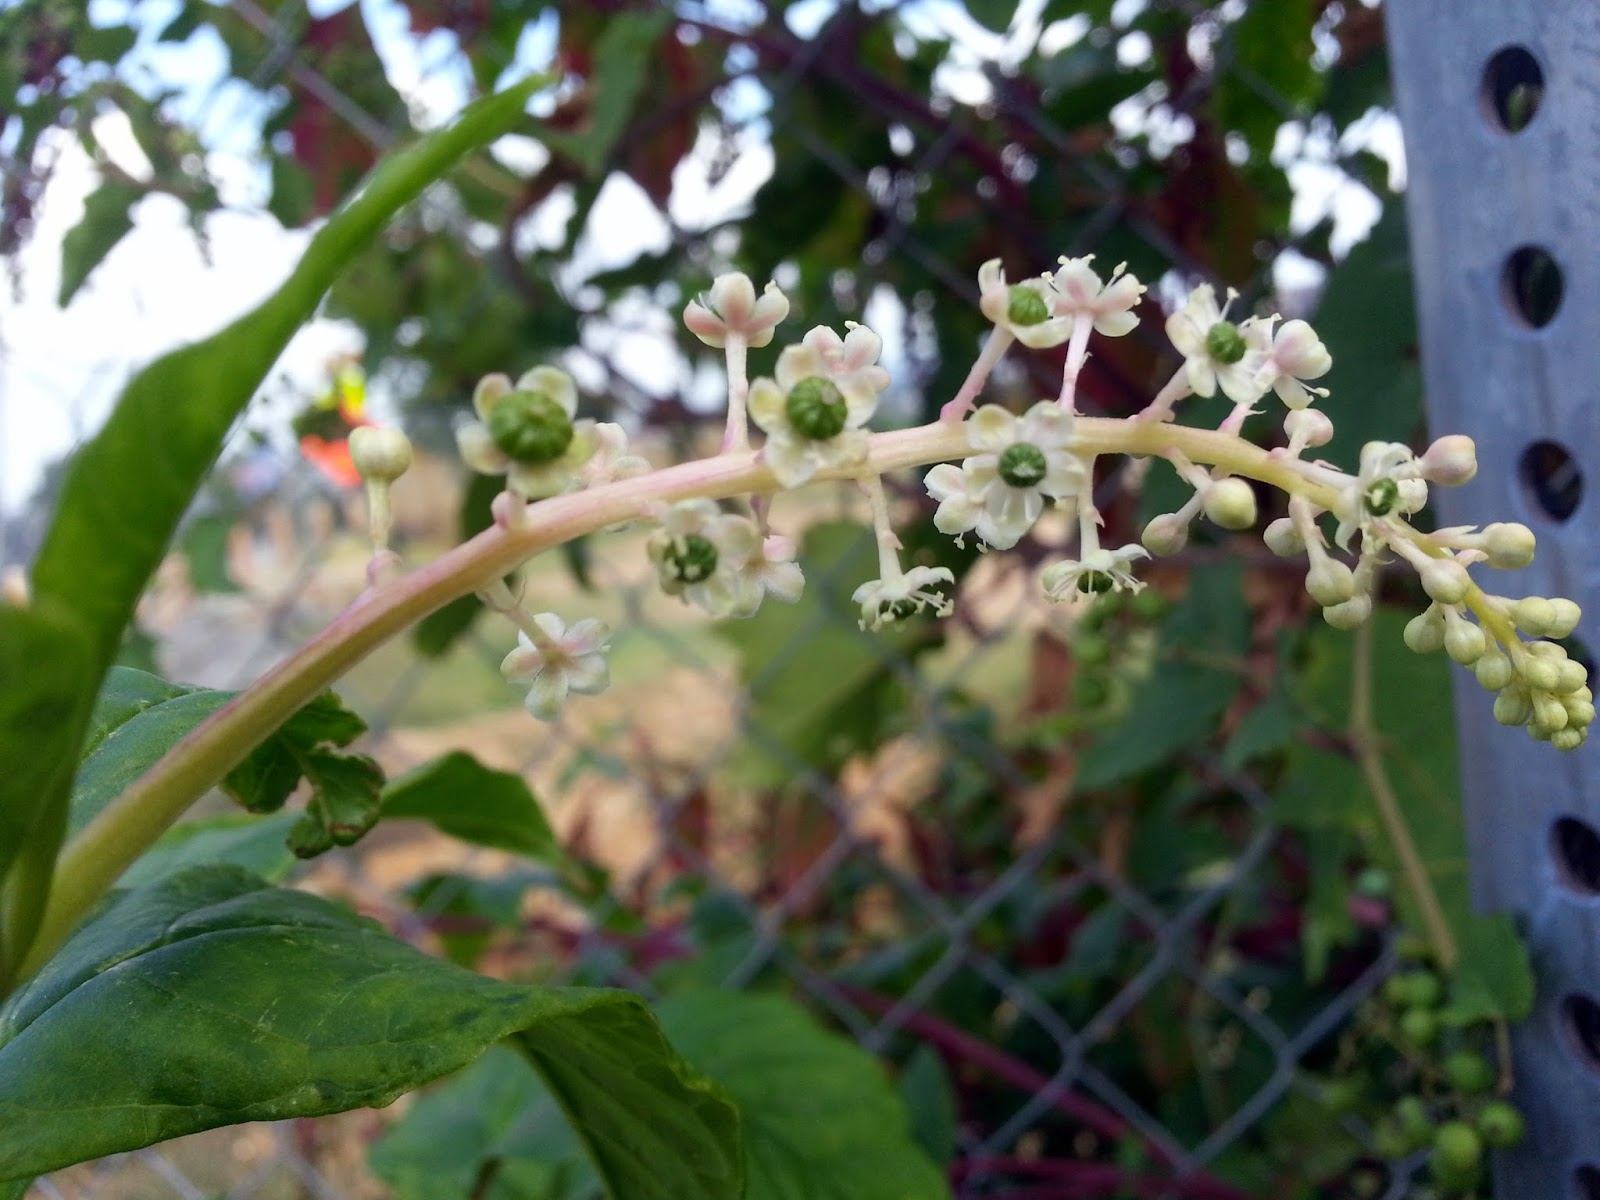 Name that Plant: Red Stems with Clusters of     - Ben's Journal